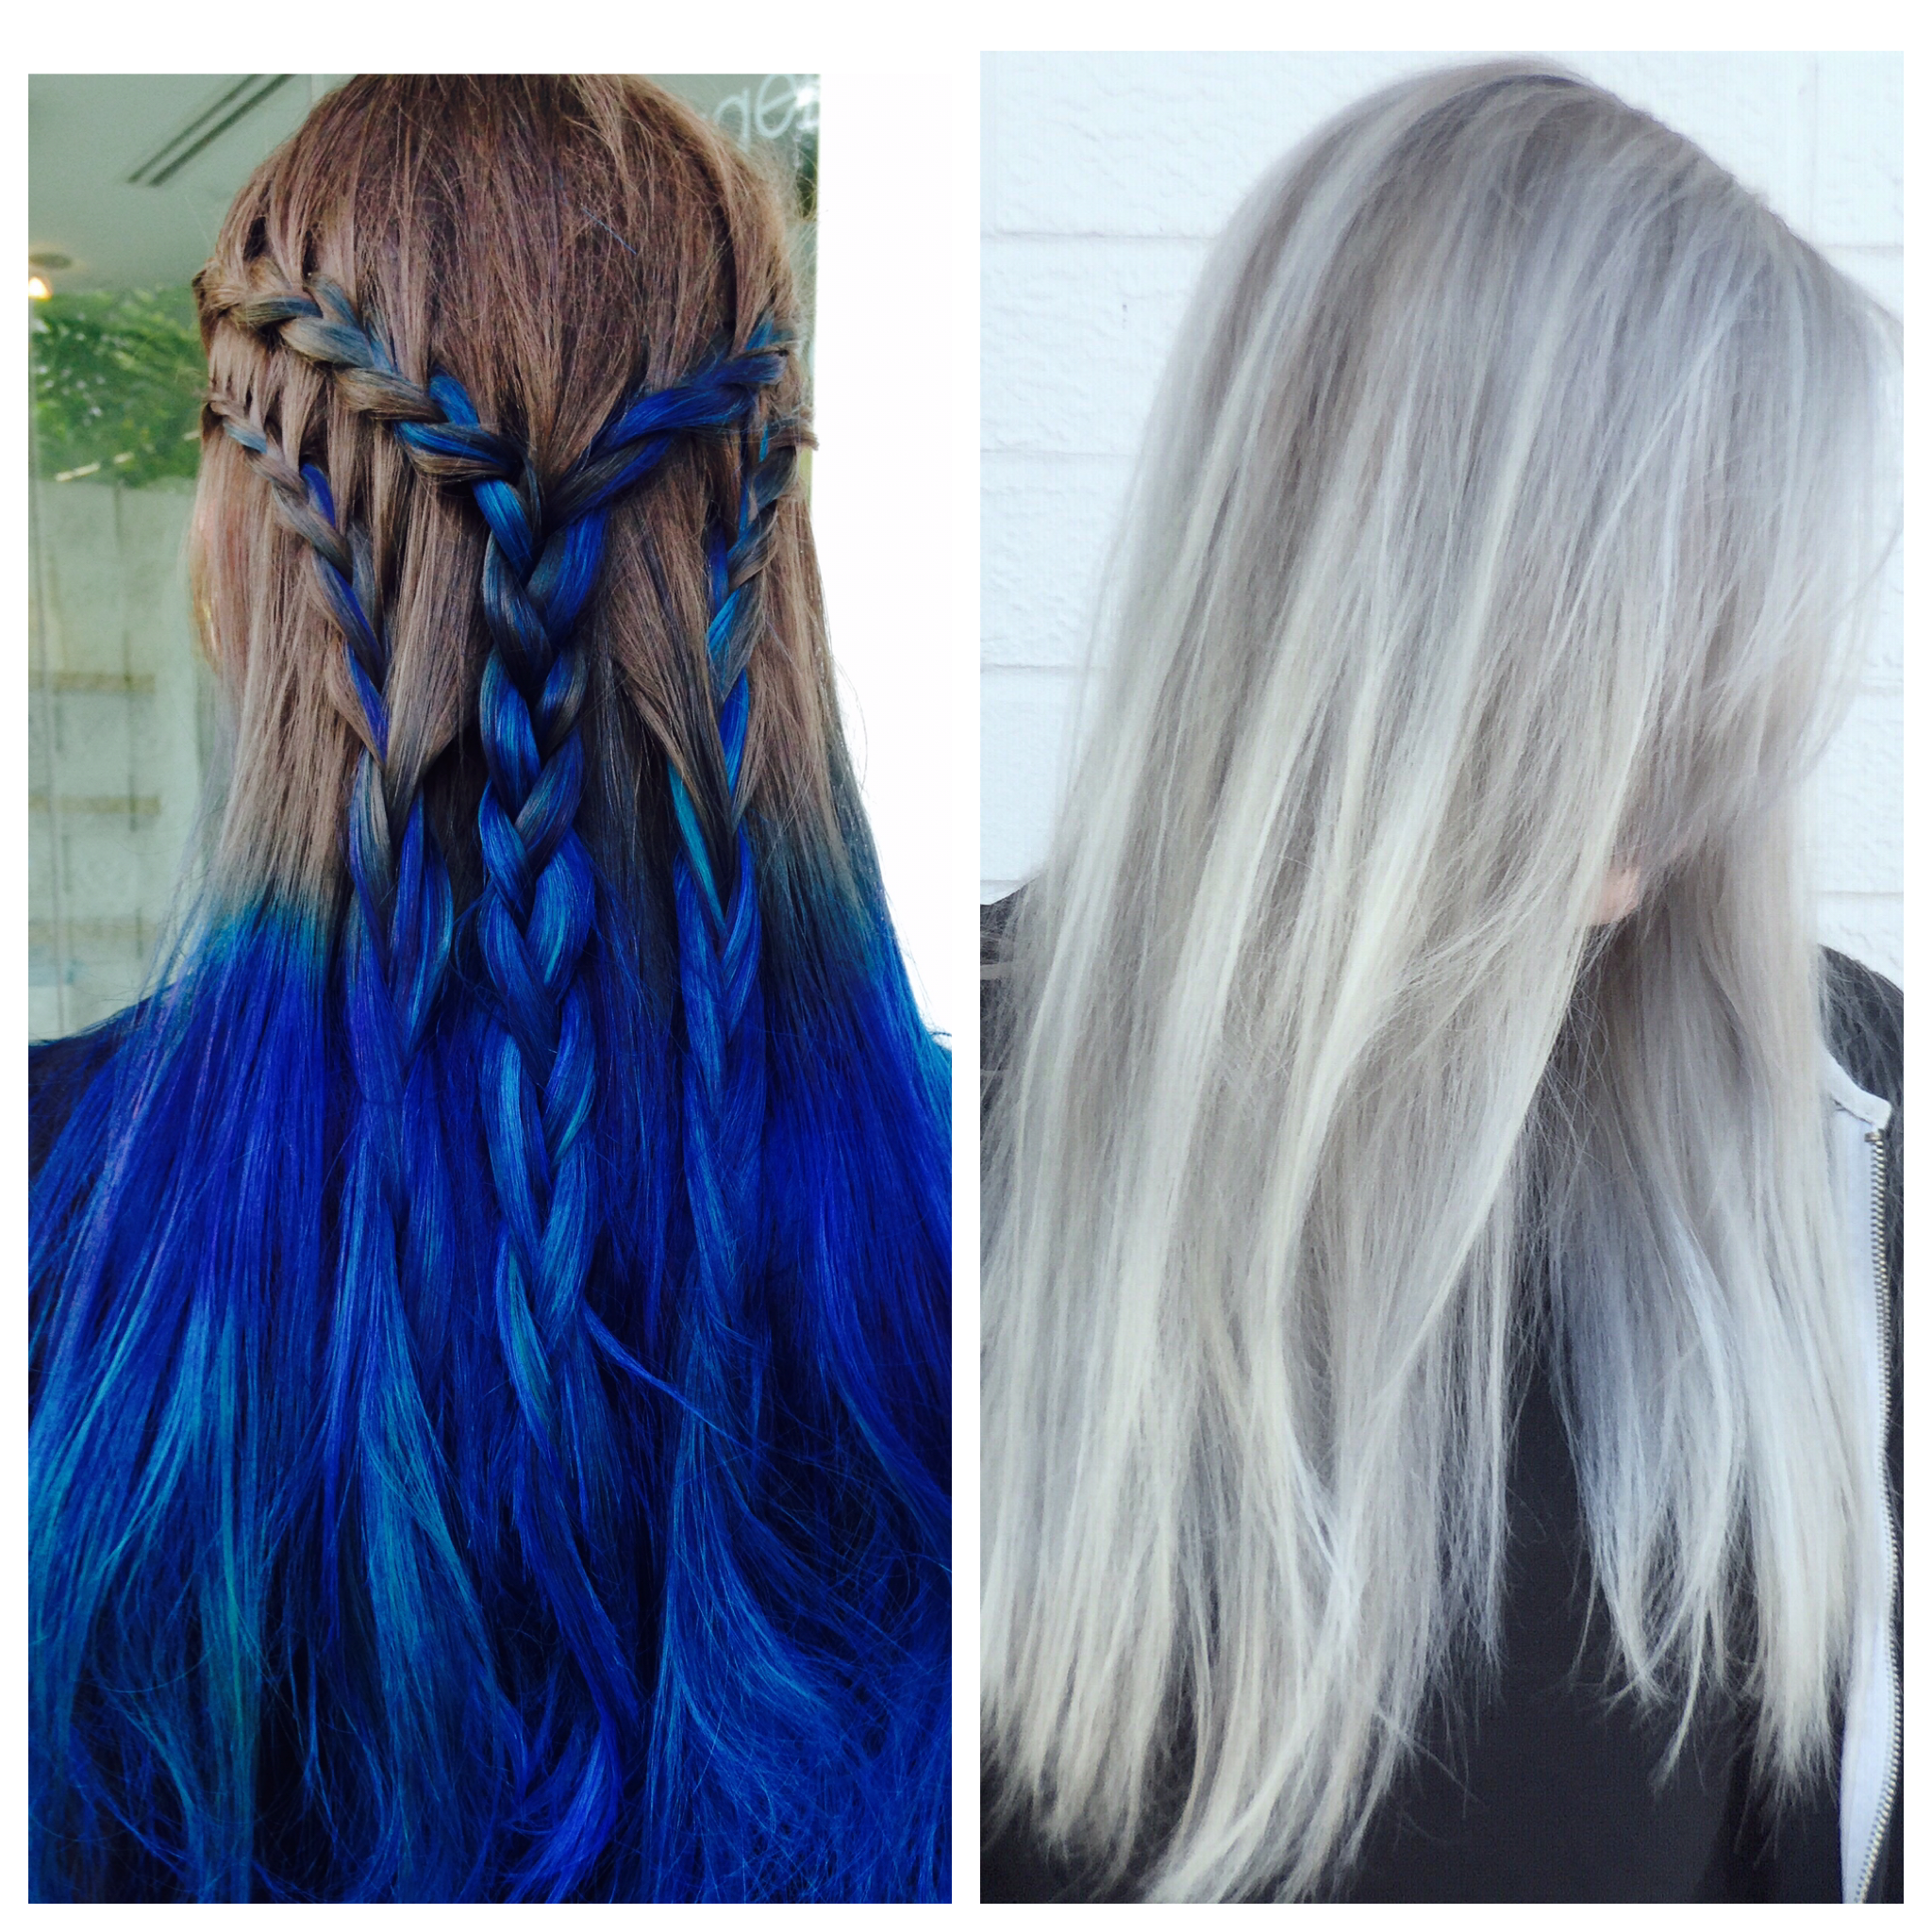 TRANSFORMATION: Fashion Color To Light Granite And Silver Balayage